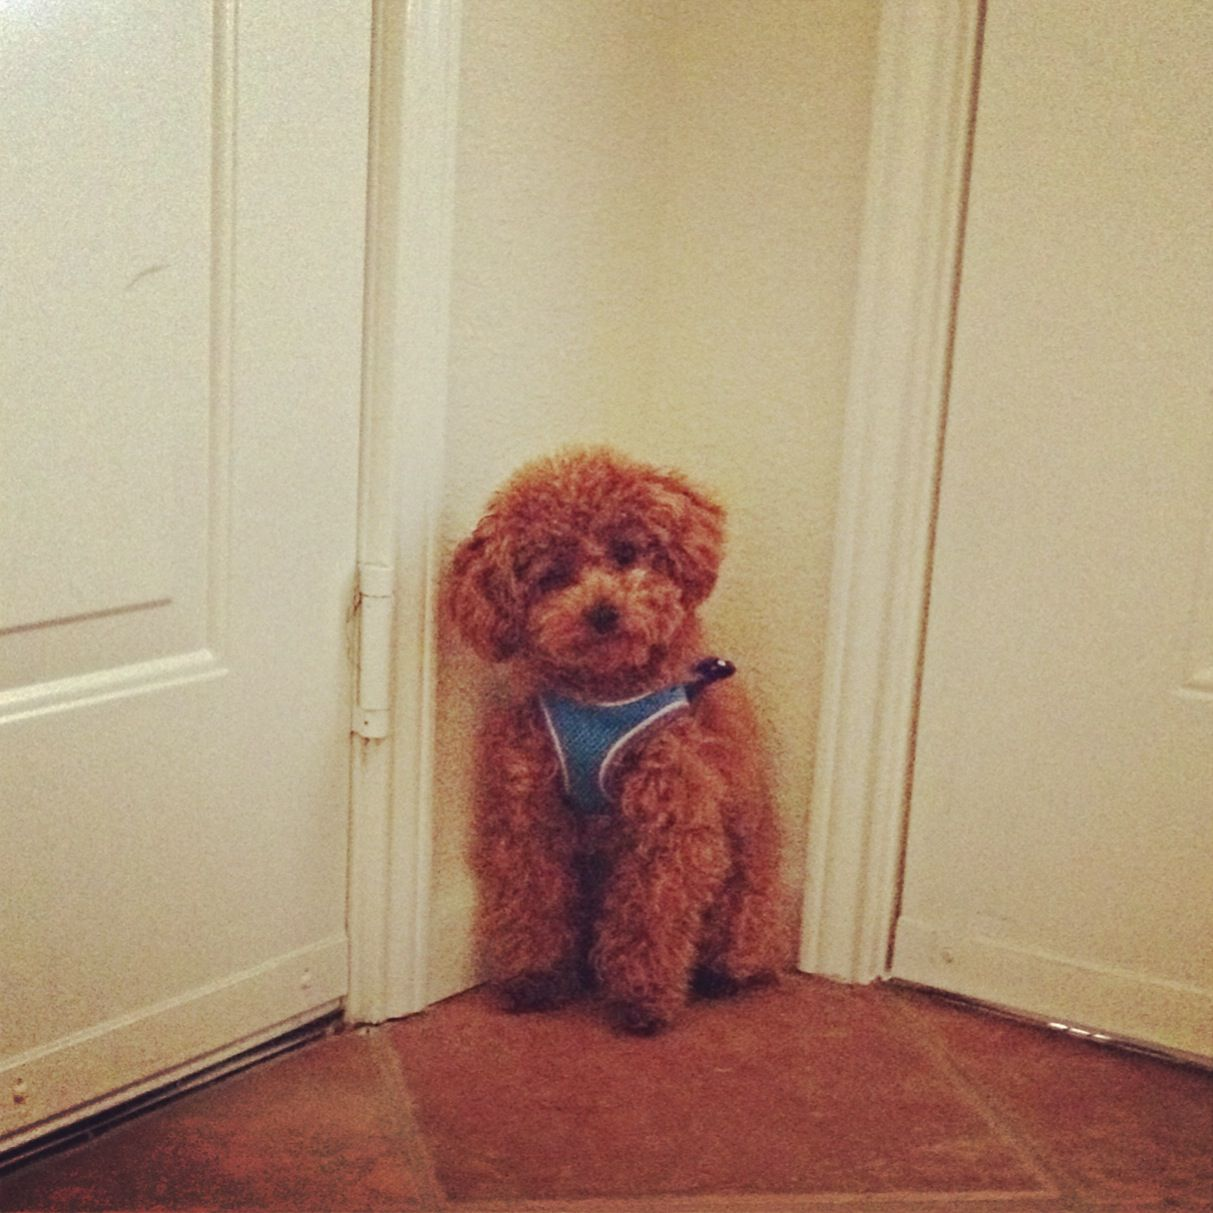 Toy poodle weight at 4 months